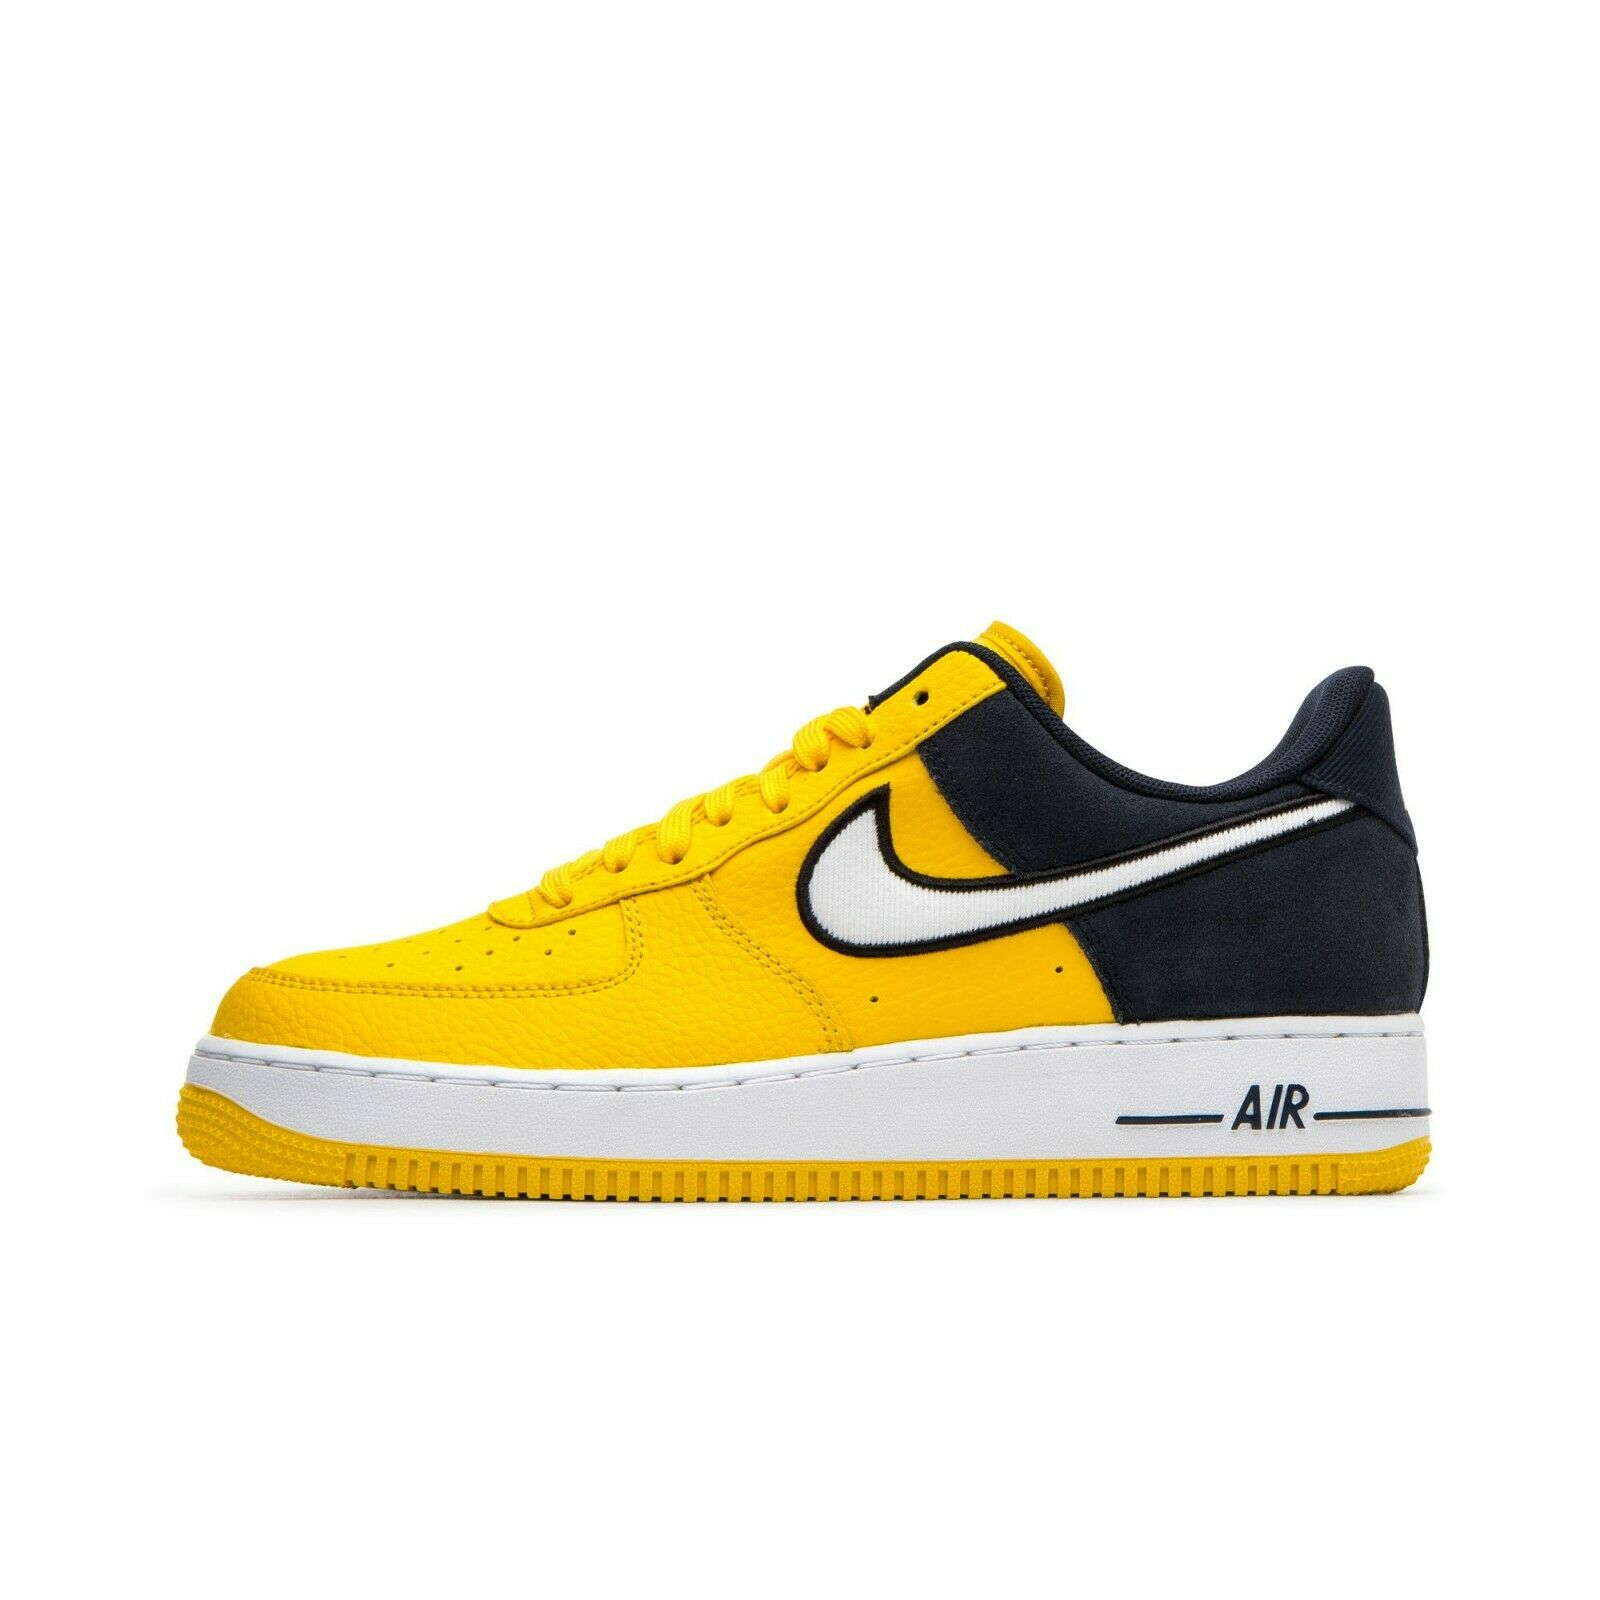 SCARPE SNEAKERS UNISEX NIKE ORIGINAL AIR FORCE 1 '07 LV8 1 AO2439 PELLE P/E2019